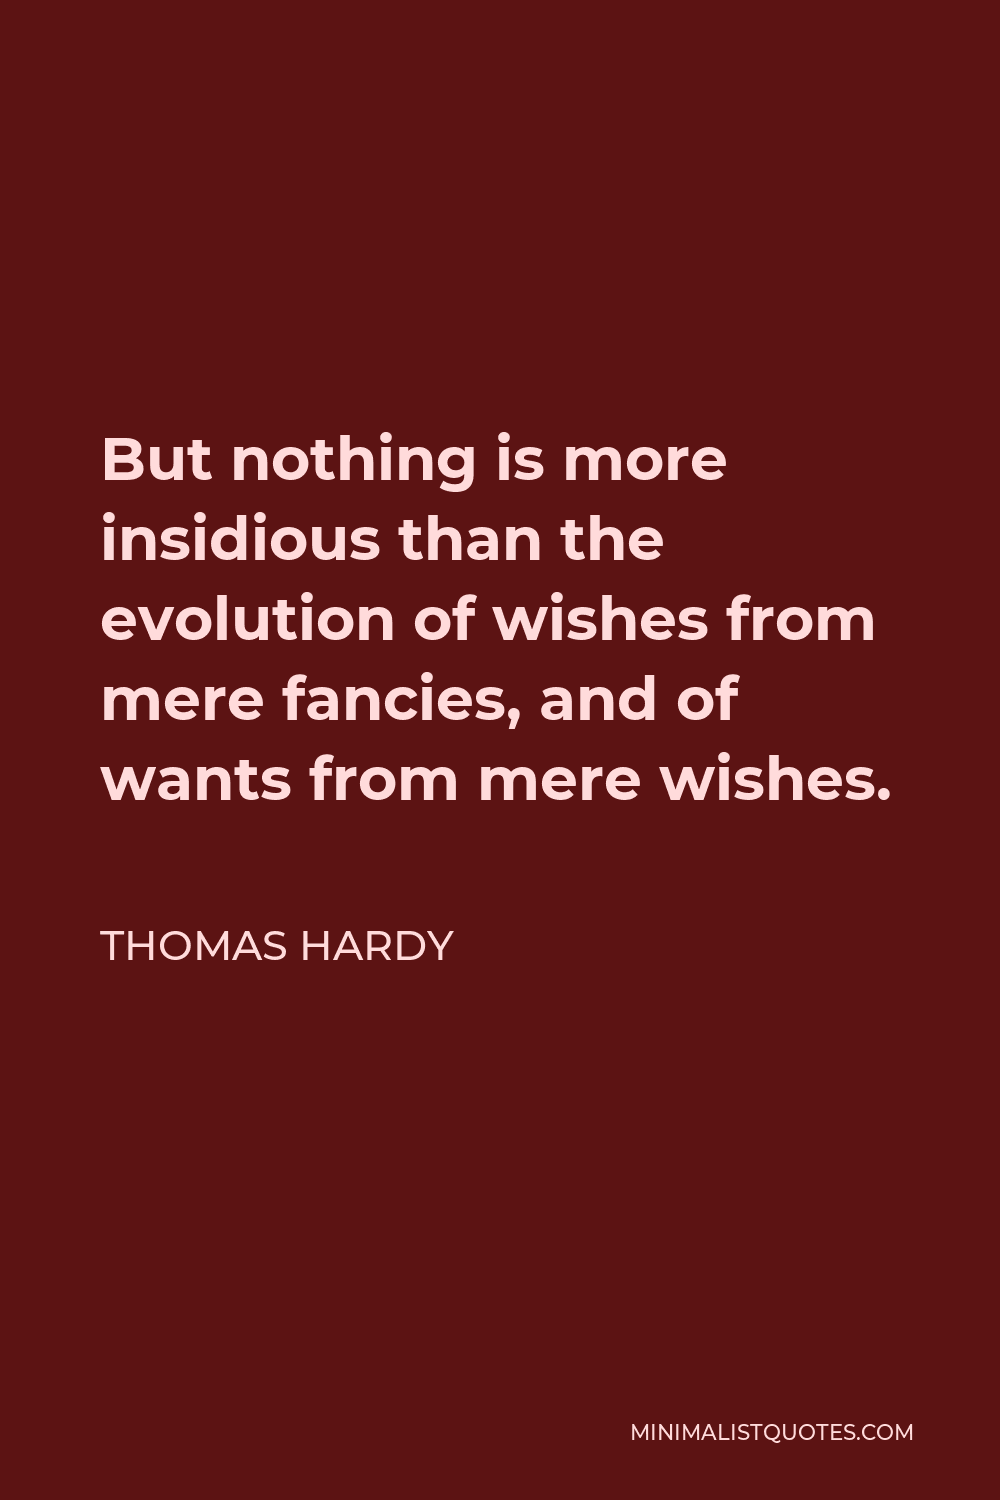 Thomas Hardy Quote - But nothing is more insidious than the evolution of wishes from mere fancies, and of wants from mere wishes.